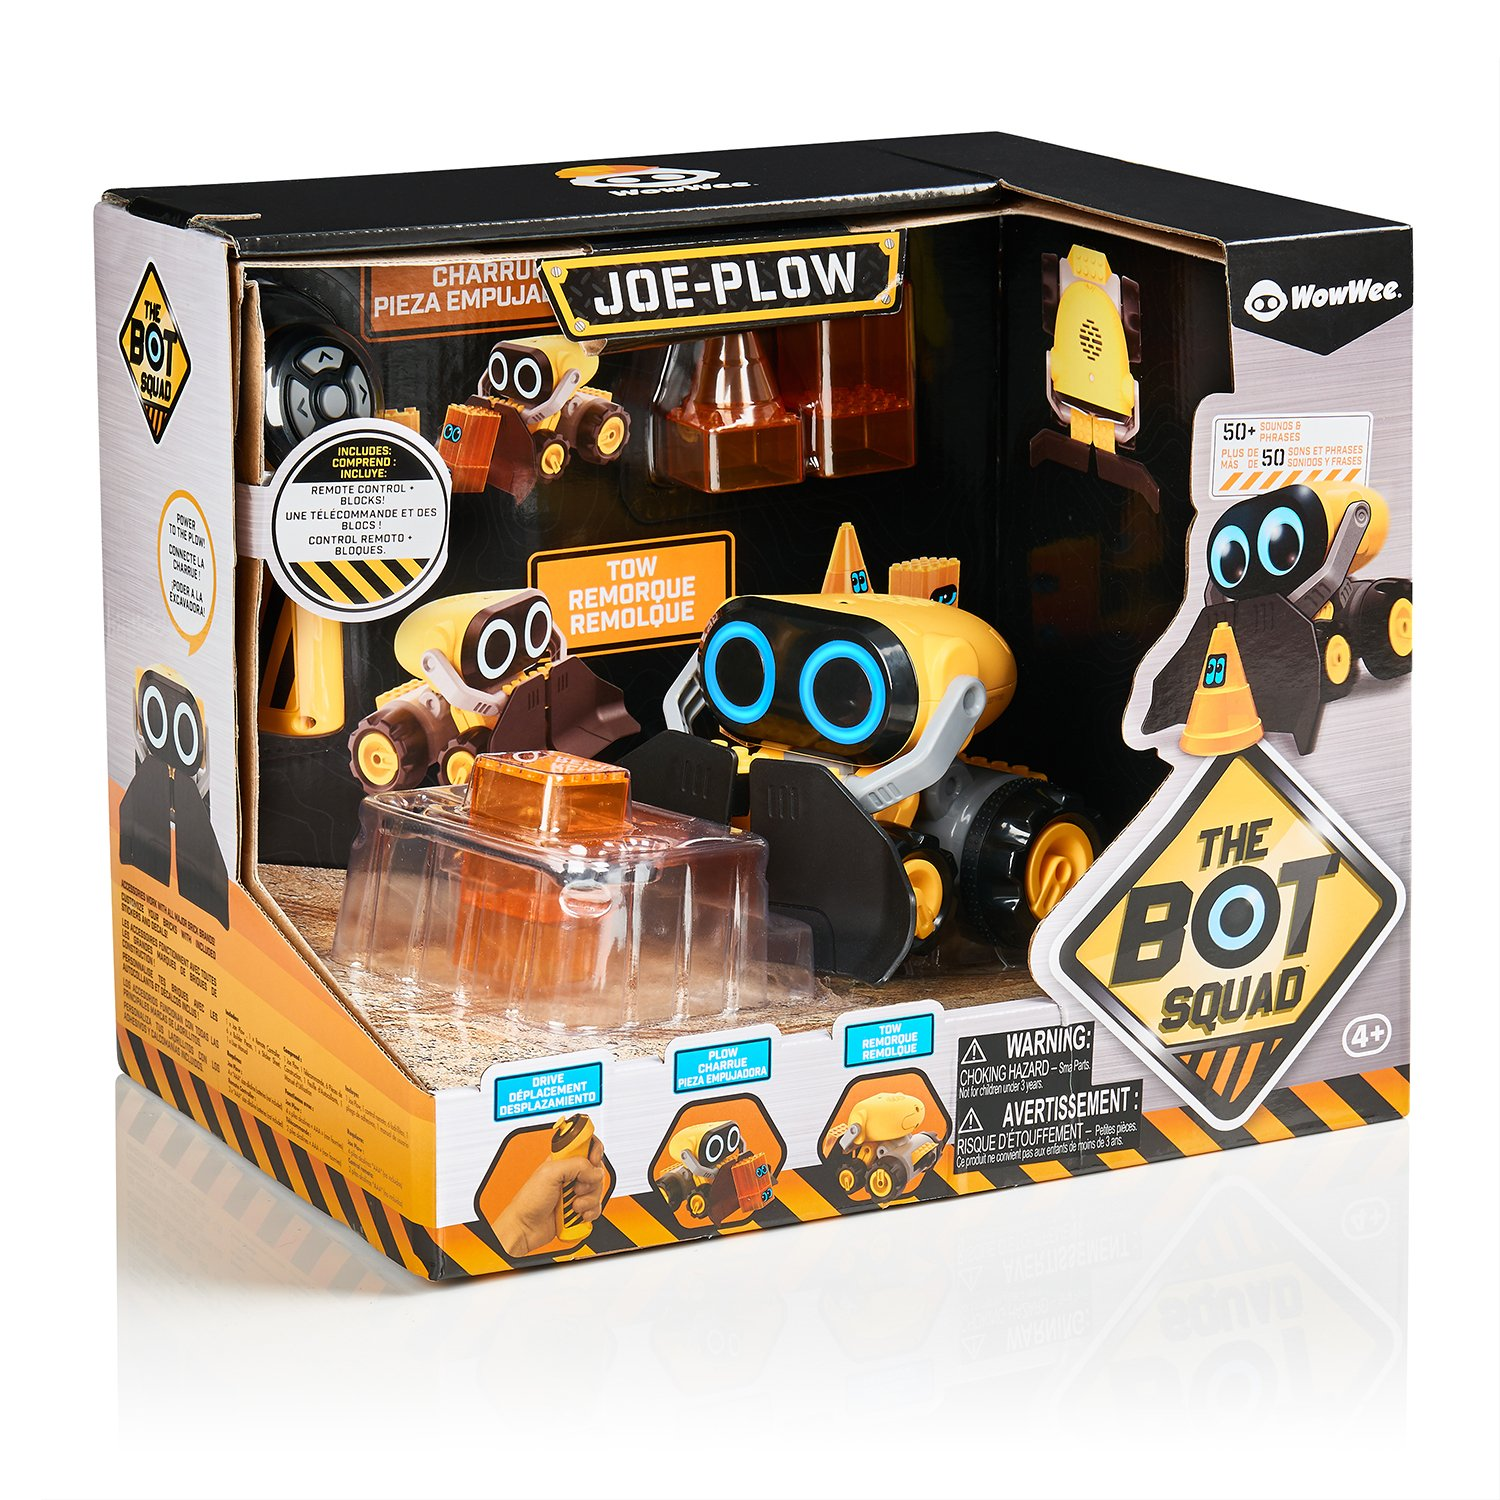 The Botsquad - Joe Plow - the path clearing remote control interactive robot toy -  by WowWee by WowWee (Image #8)